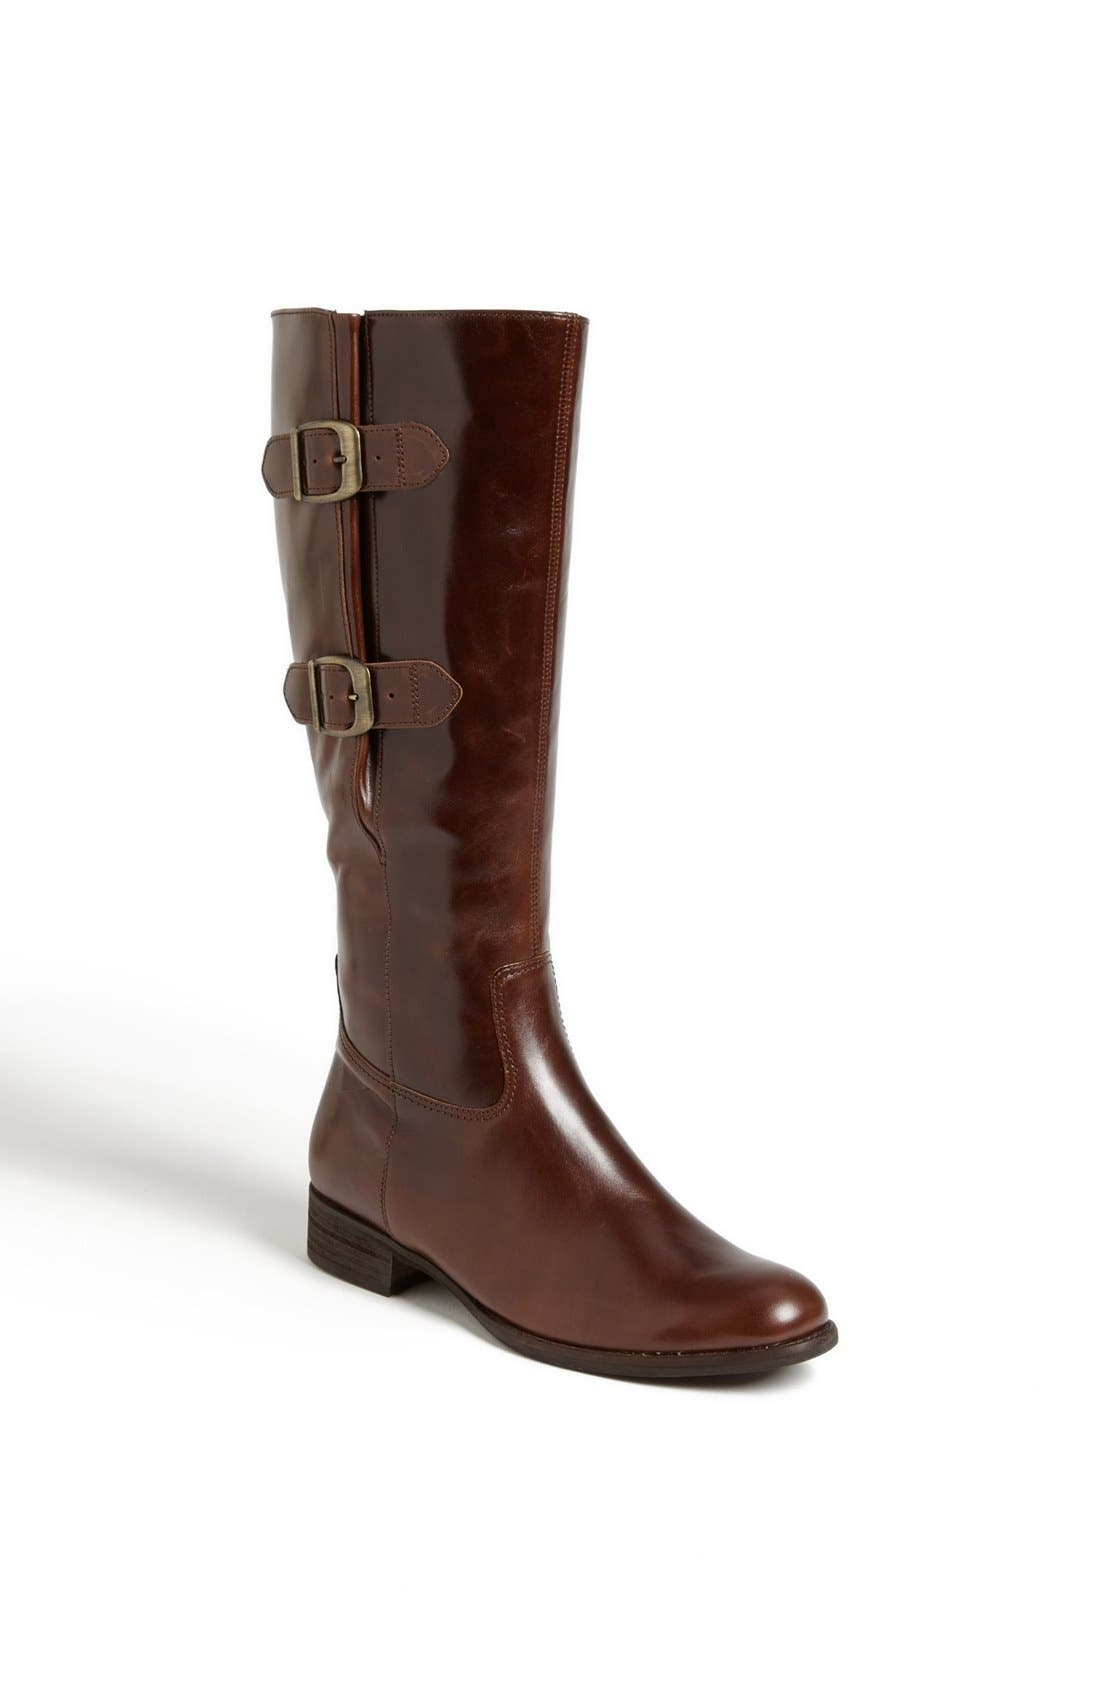 Alternate Image 1 Selected - Gabor Adjustable Buckle Riding Boot